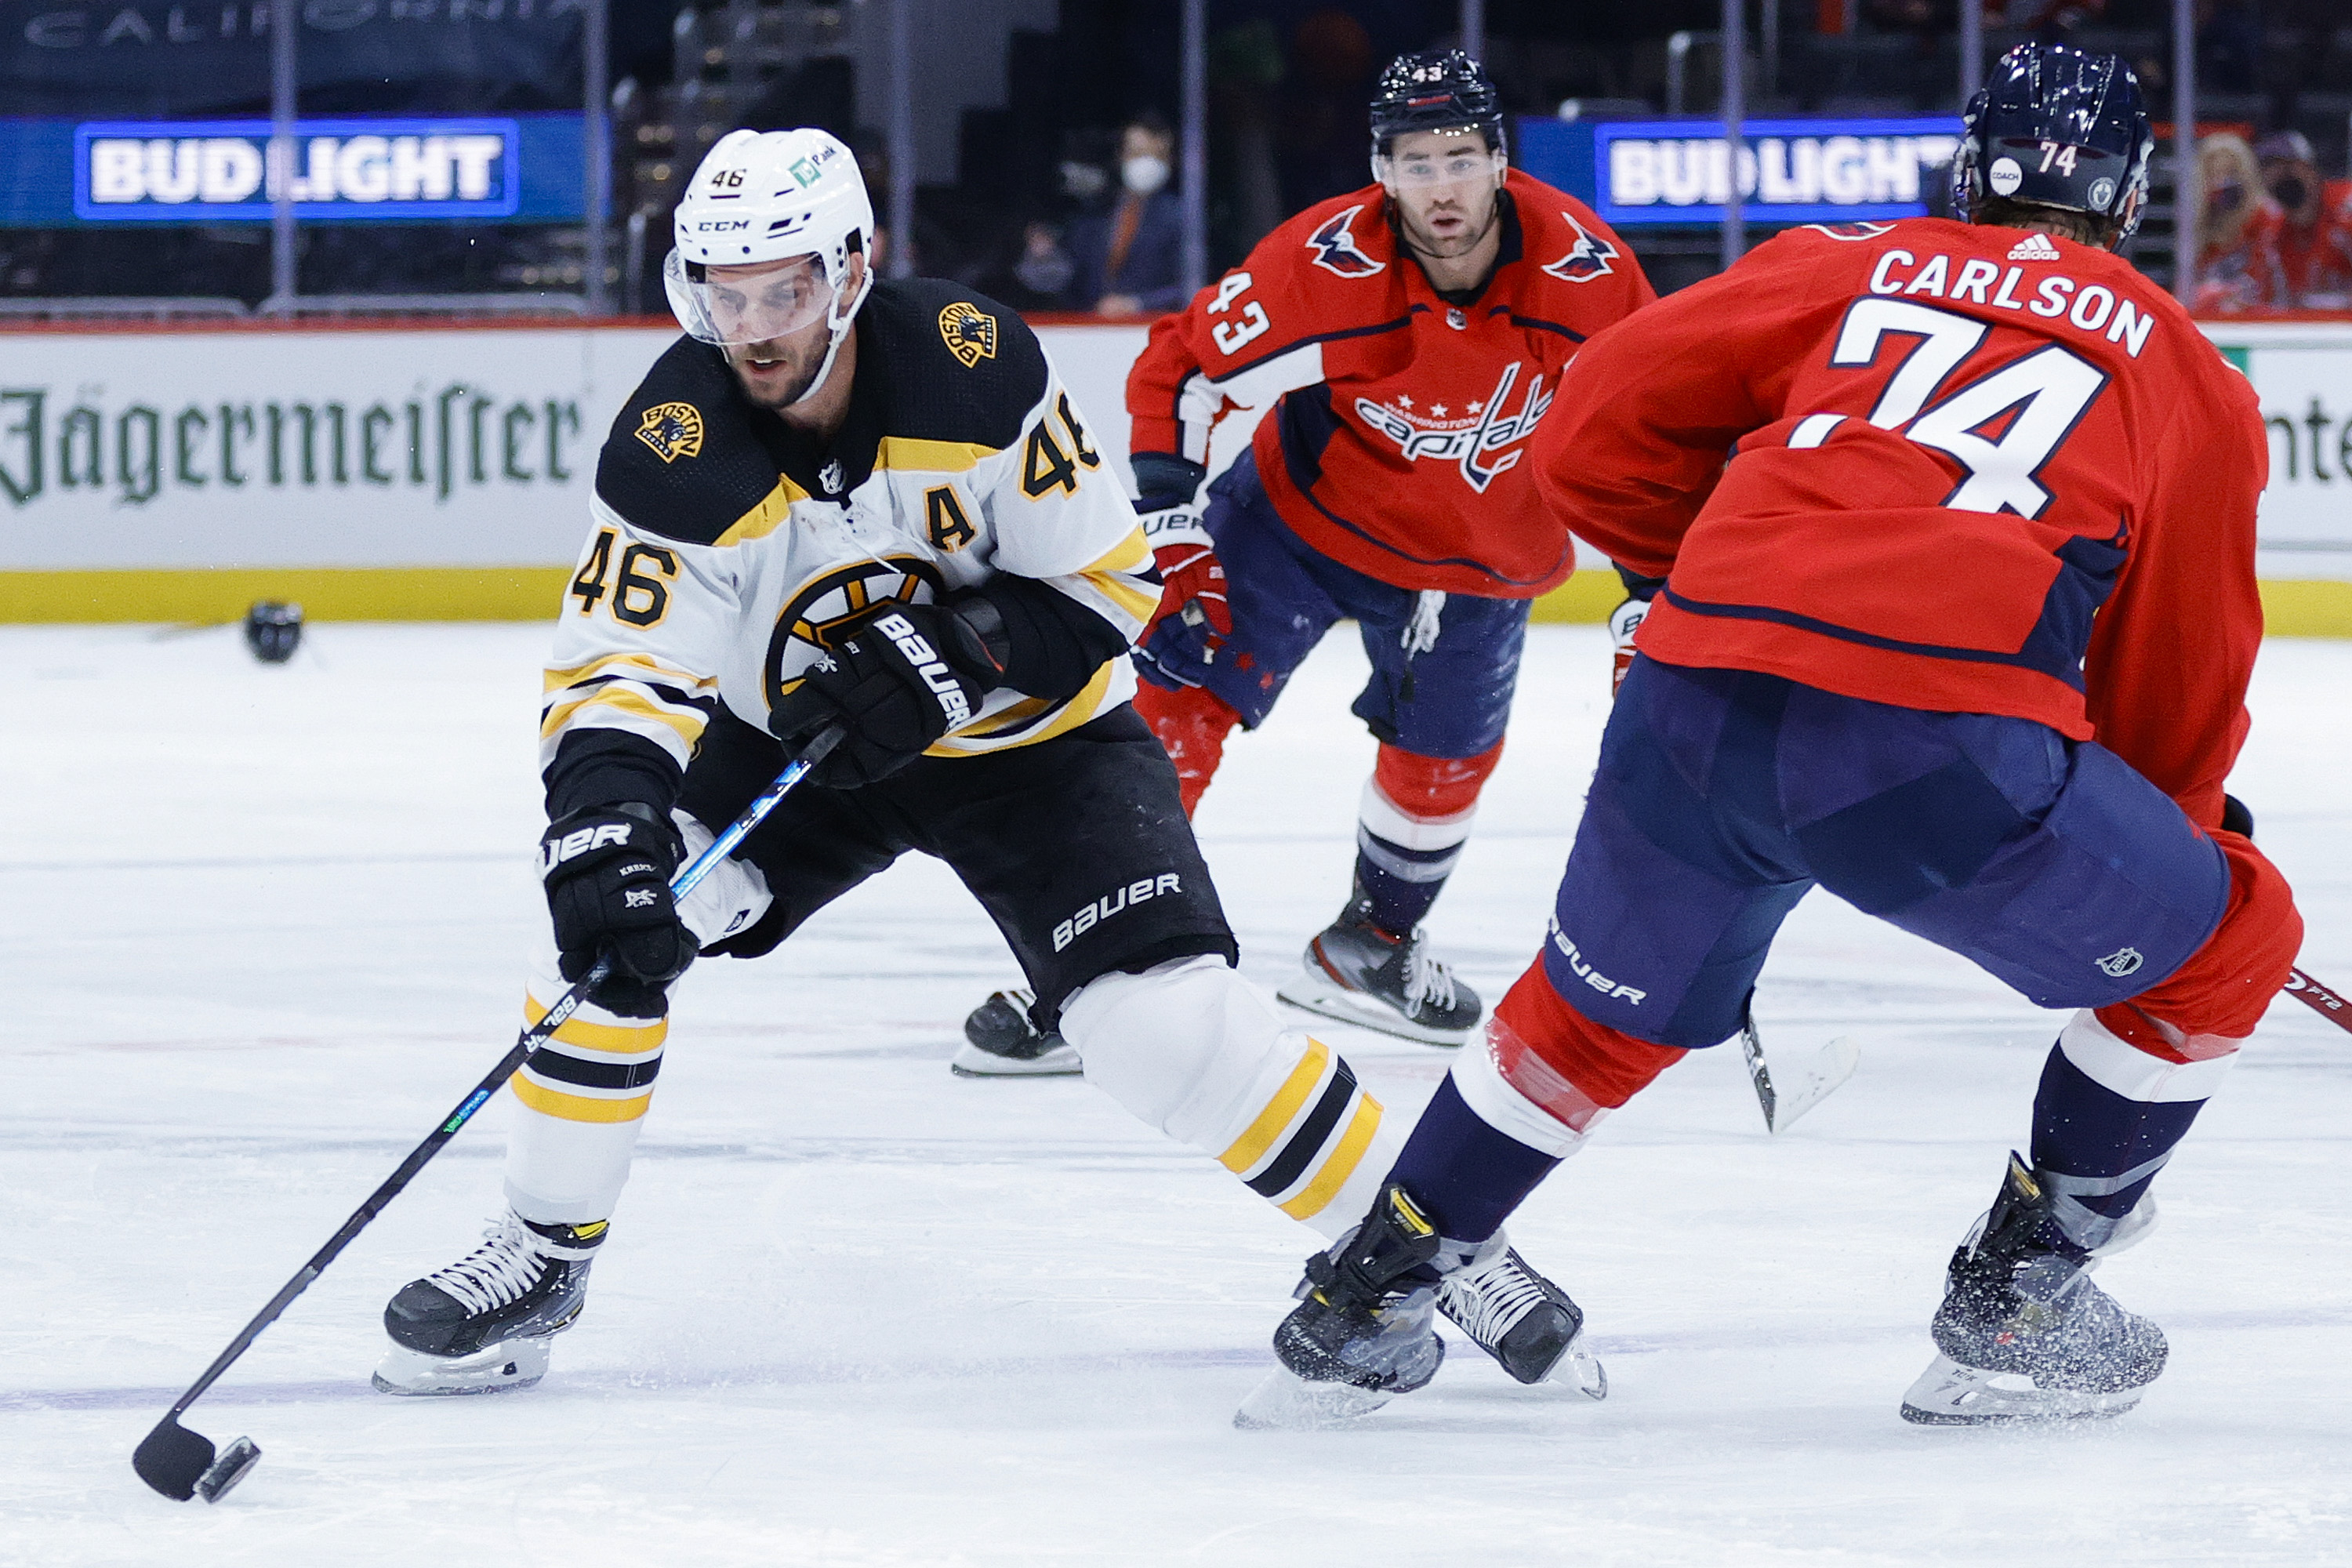 David Krejci #46 of the Boston Bruins skates past John Carlson #74 of the Washington Capitals during the third period during Game One of the First Round of the 2021 Stanley Cup Playoffs May 15, 2021 at Capital One Arena on May 15, 2021 in Washington, DC.